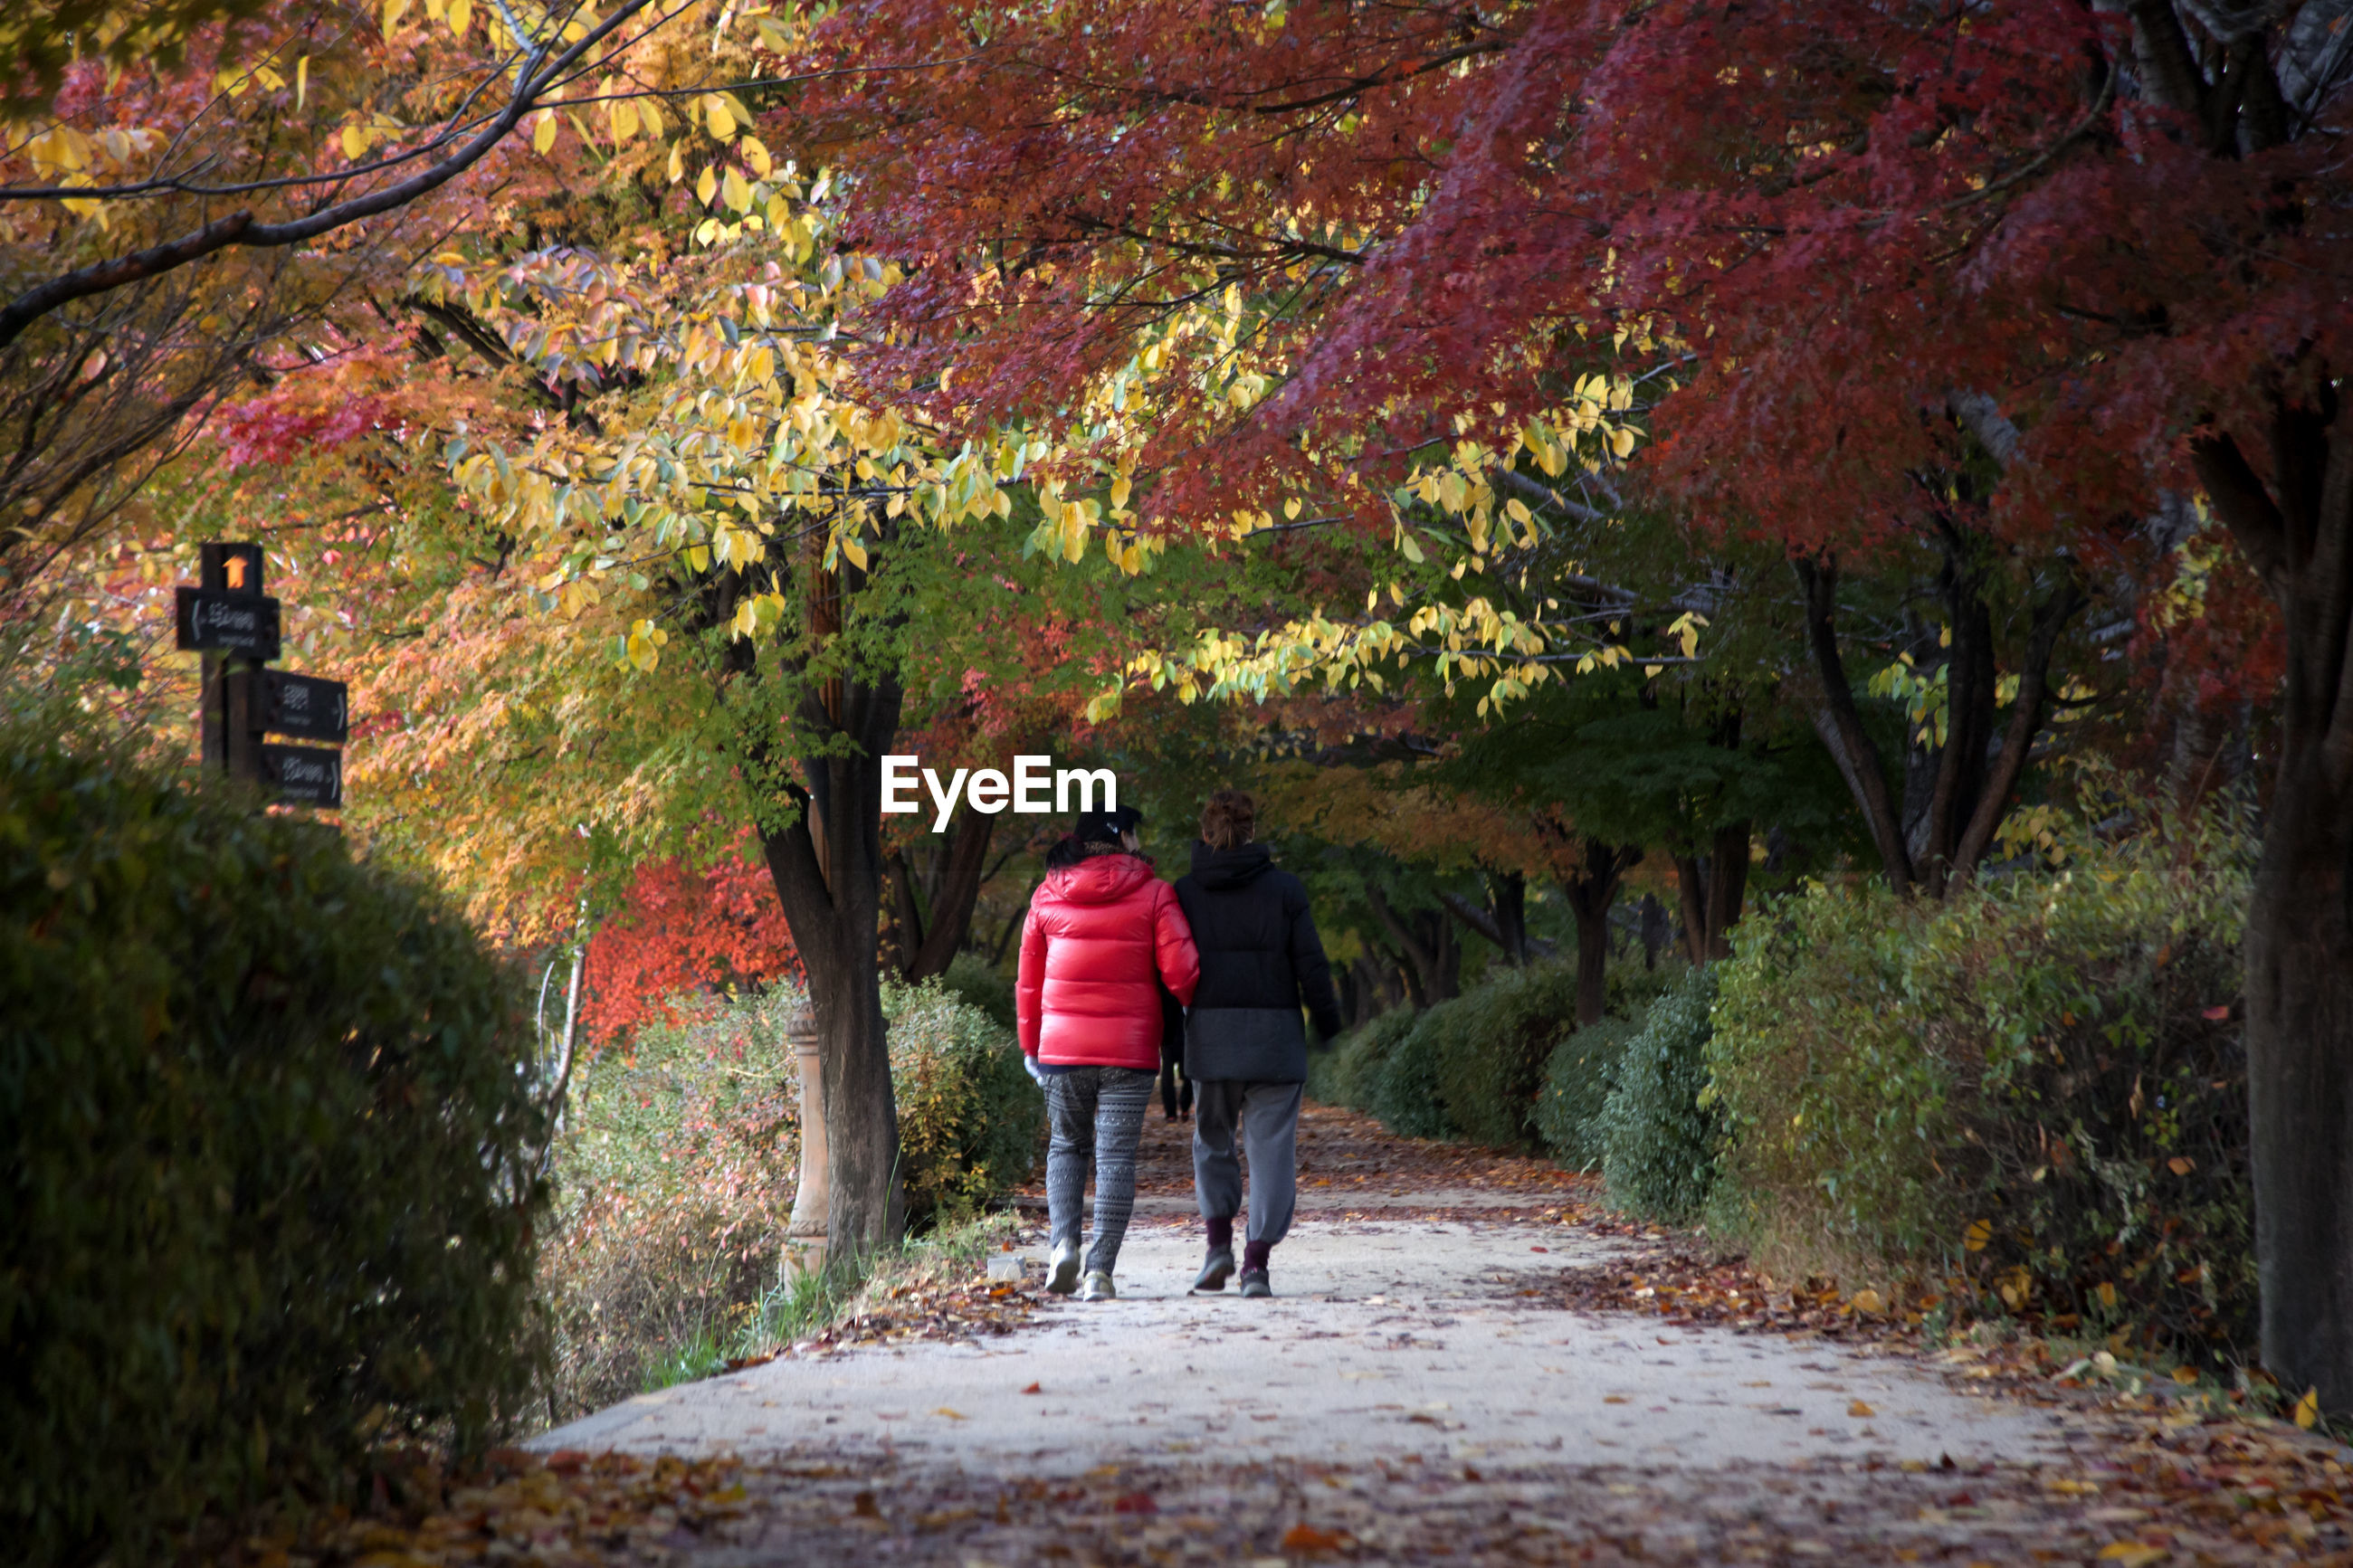 Rear view of women walking on road amidst trees at public park during autumn